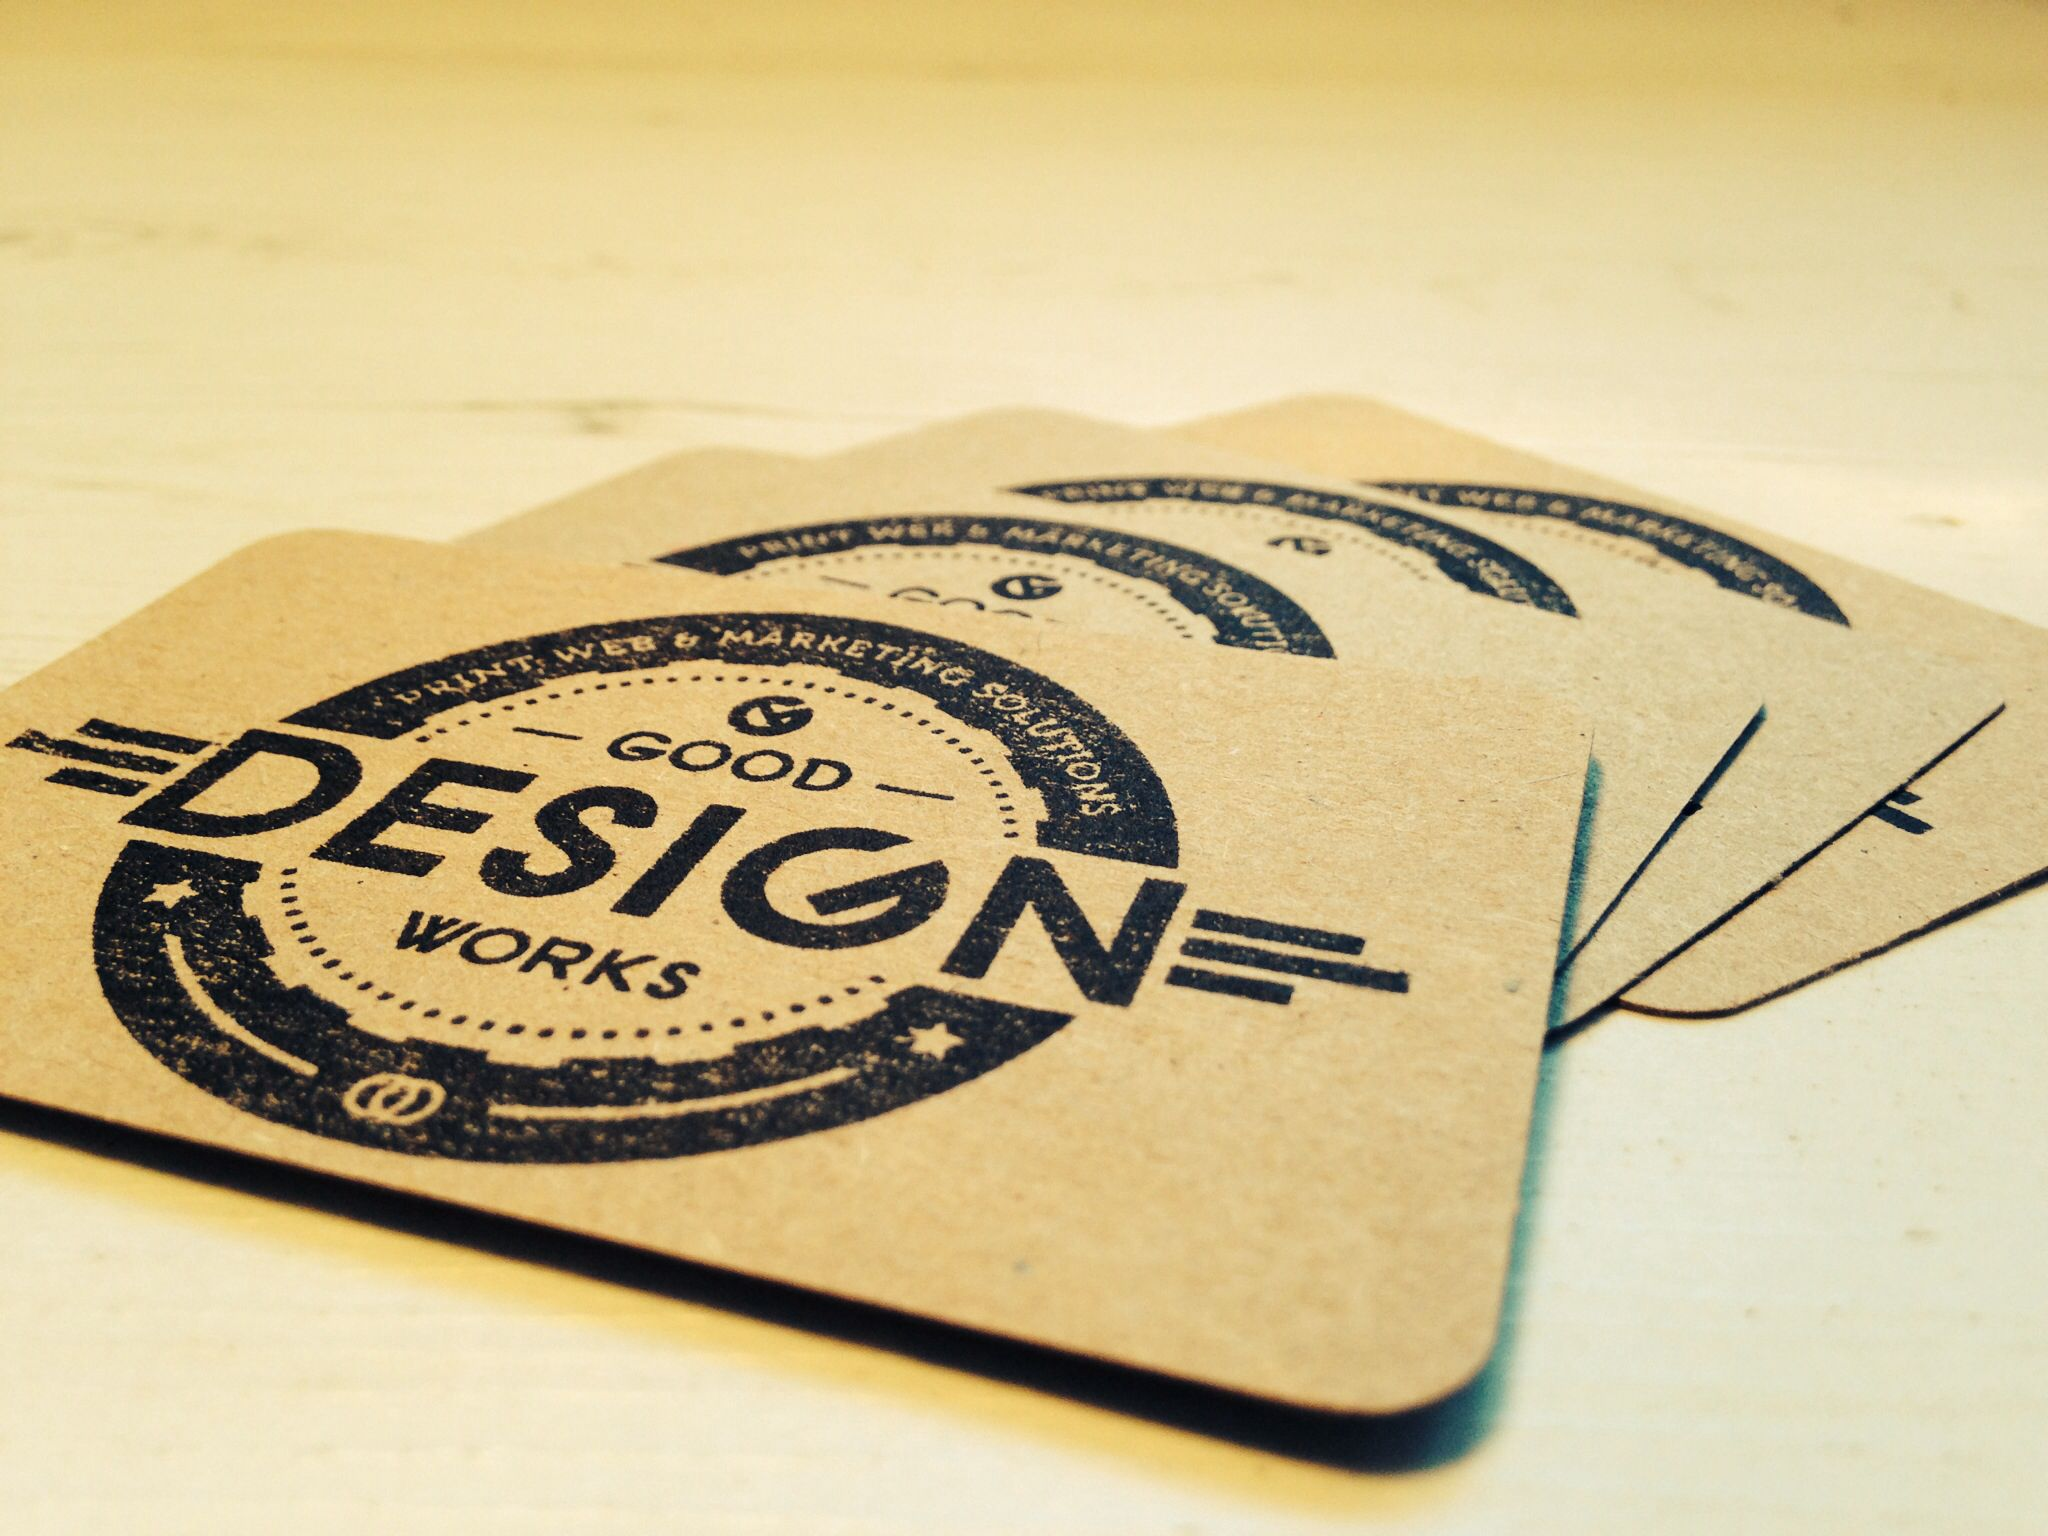 new business cards using recycled paper and stamps by good design